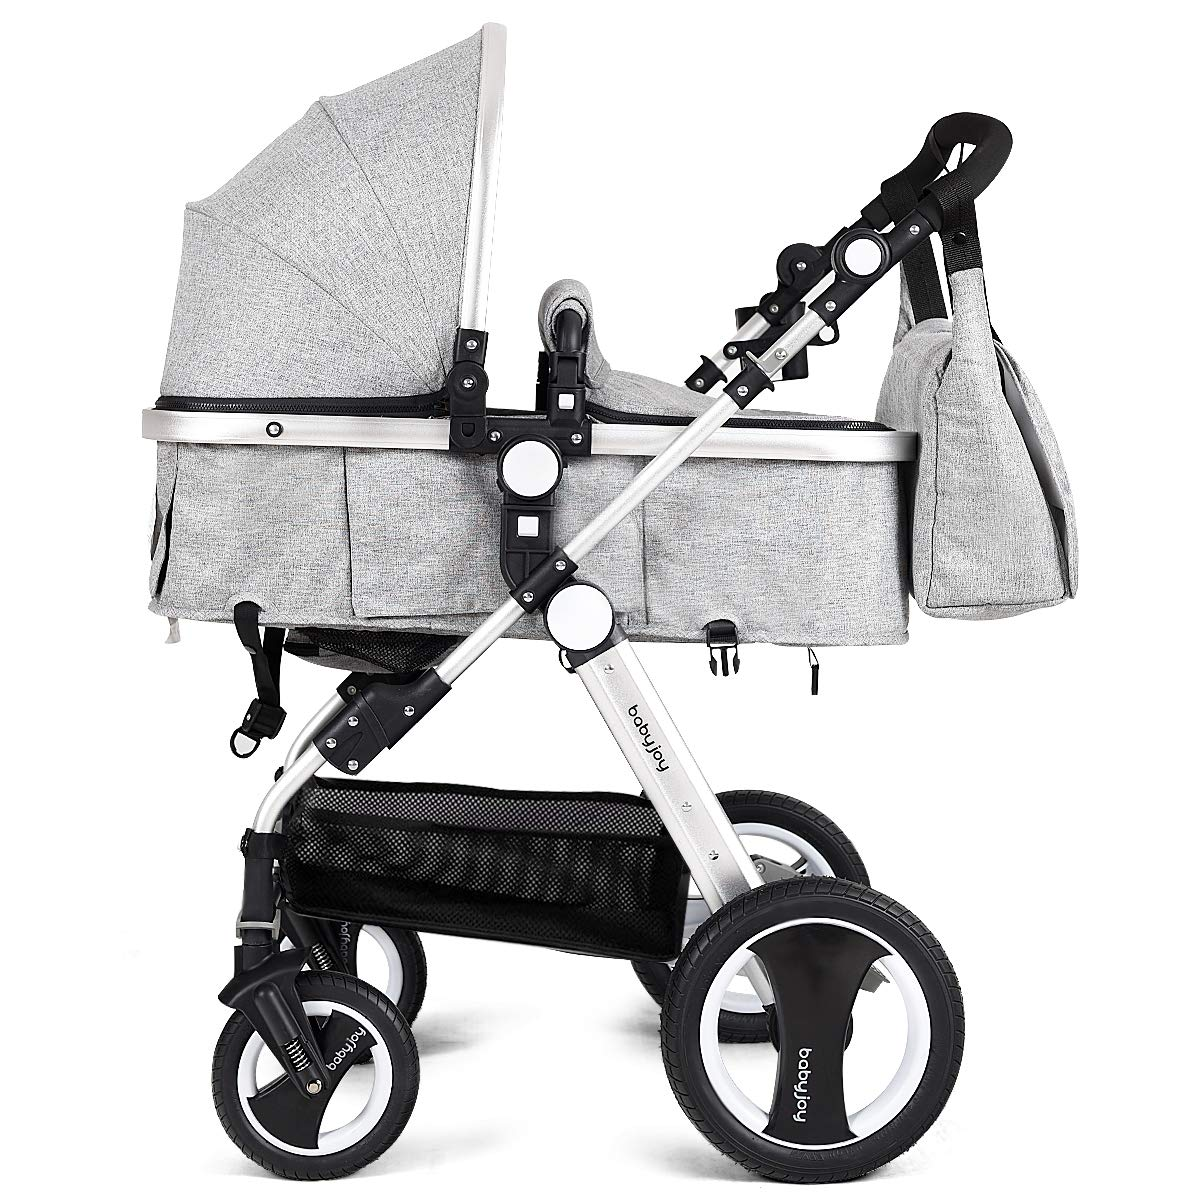 BABY JOY Baby Stroller, Aluminum 2-in-1 Foldable Toddler Stroller, Convertible Bassinet Reclining Stroller Carriage with Cup Holder & Foot Cover & Diaper Bag, Gray